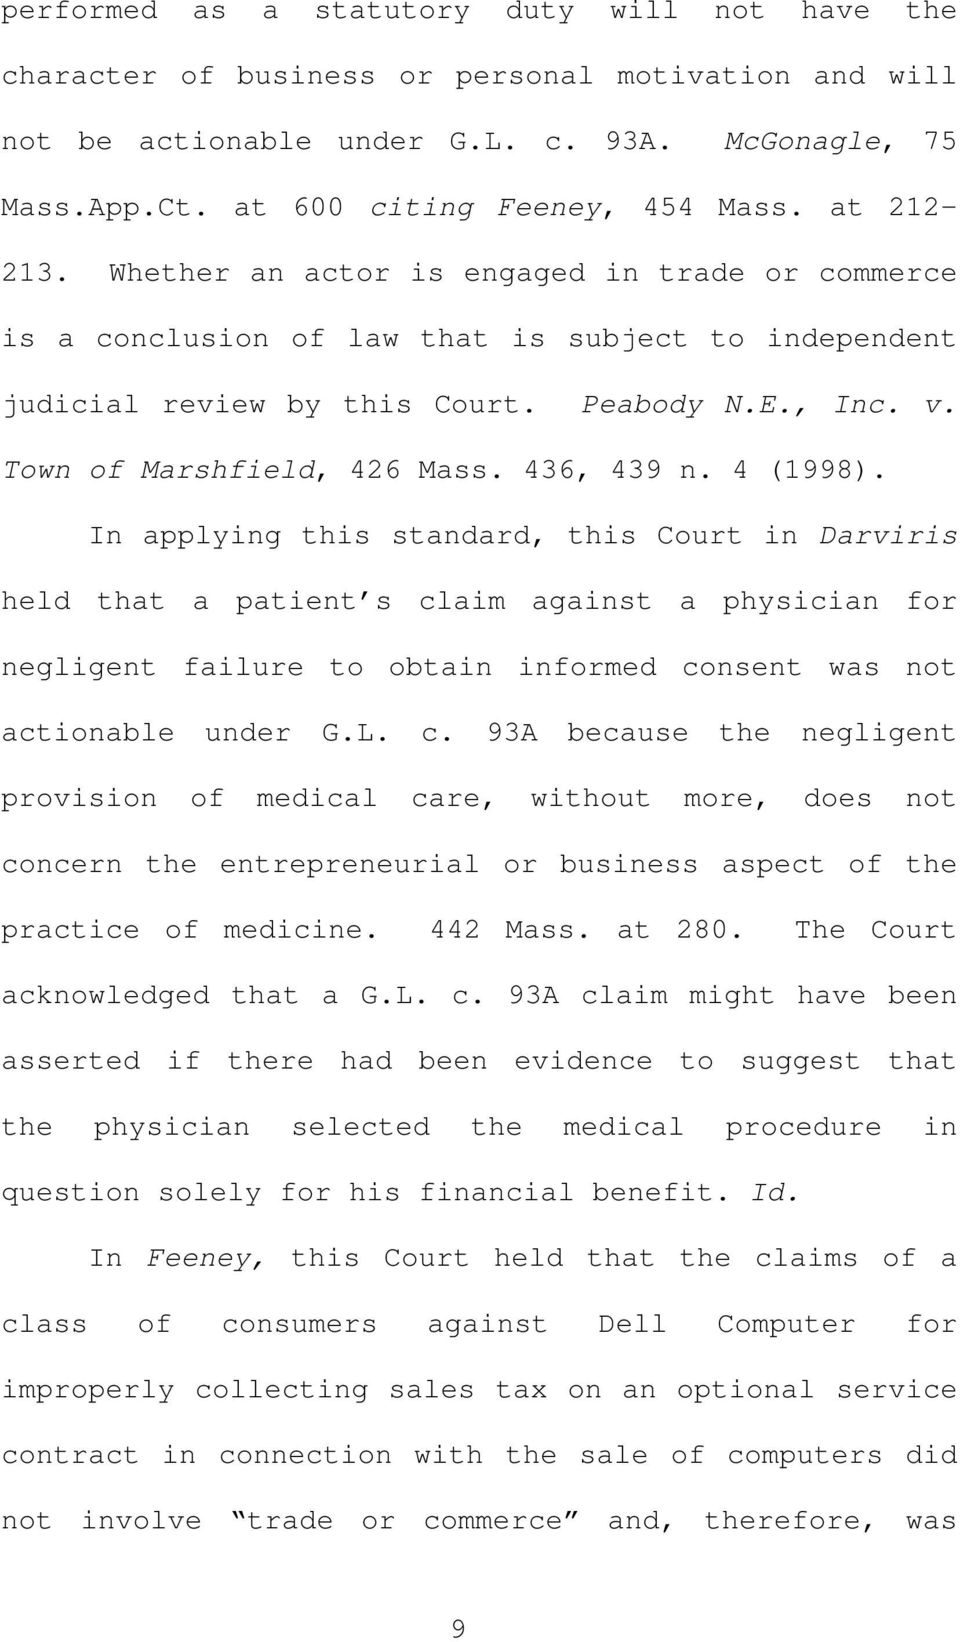 436, 439 n. 4 (1998). In applying this standard, this Court in Darviris held that a patient s claim against a physician for negligent failure to obtain informed consent was not actionable under G.L.